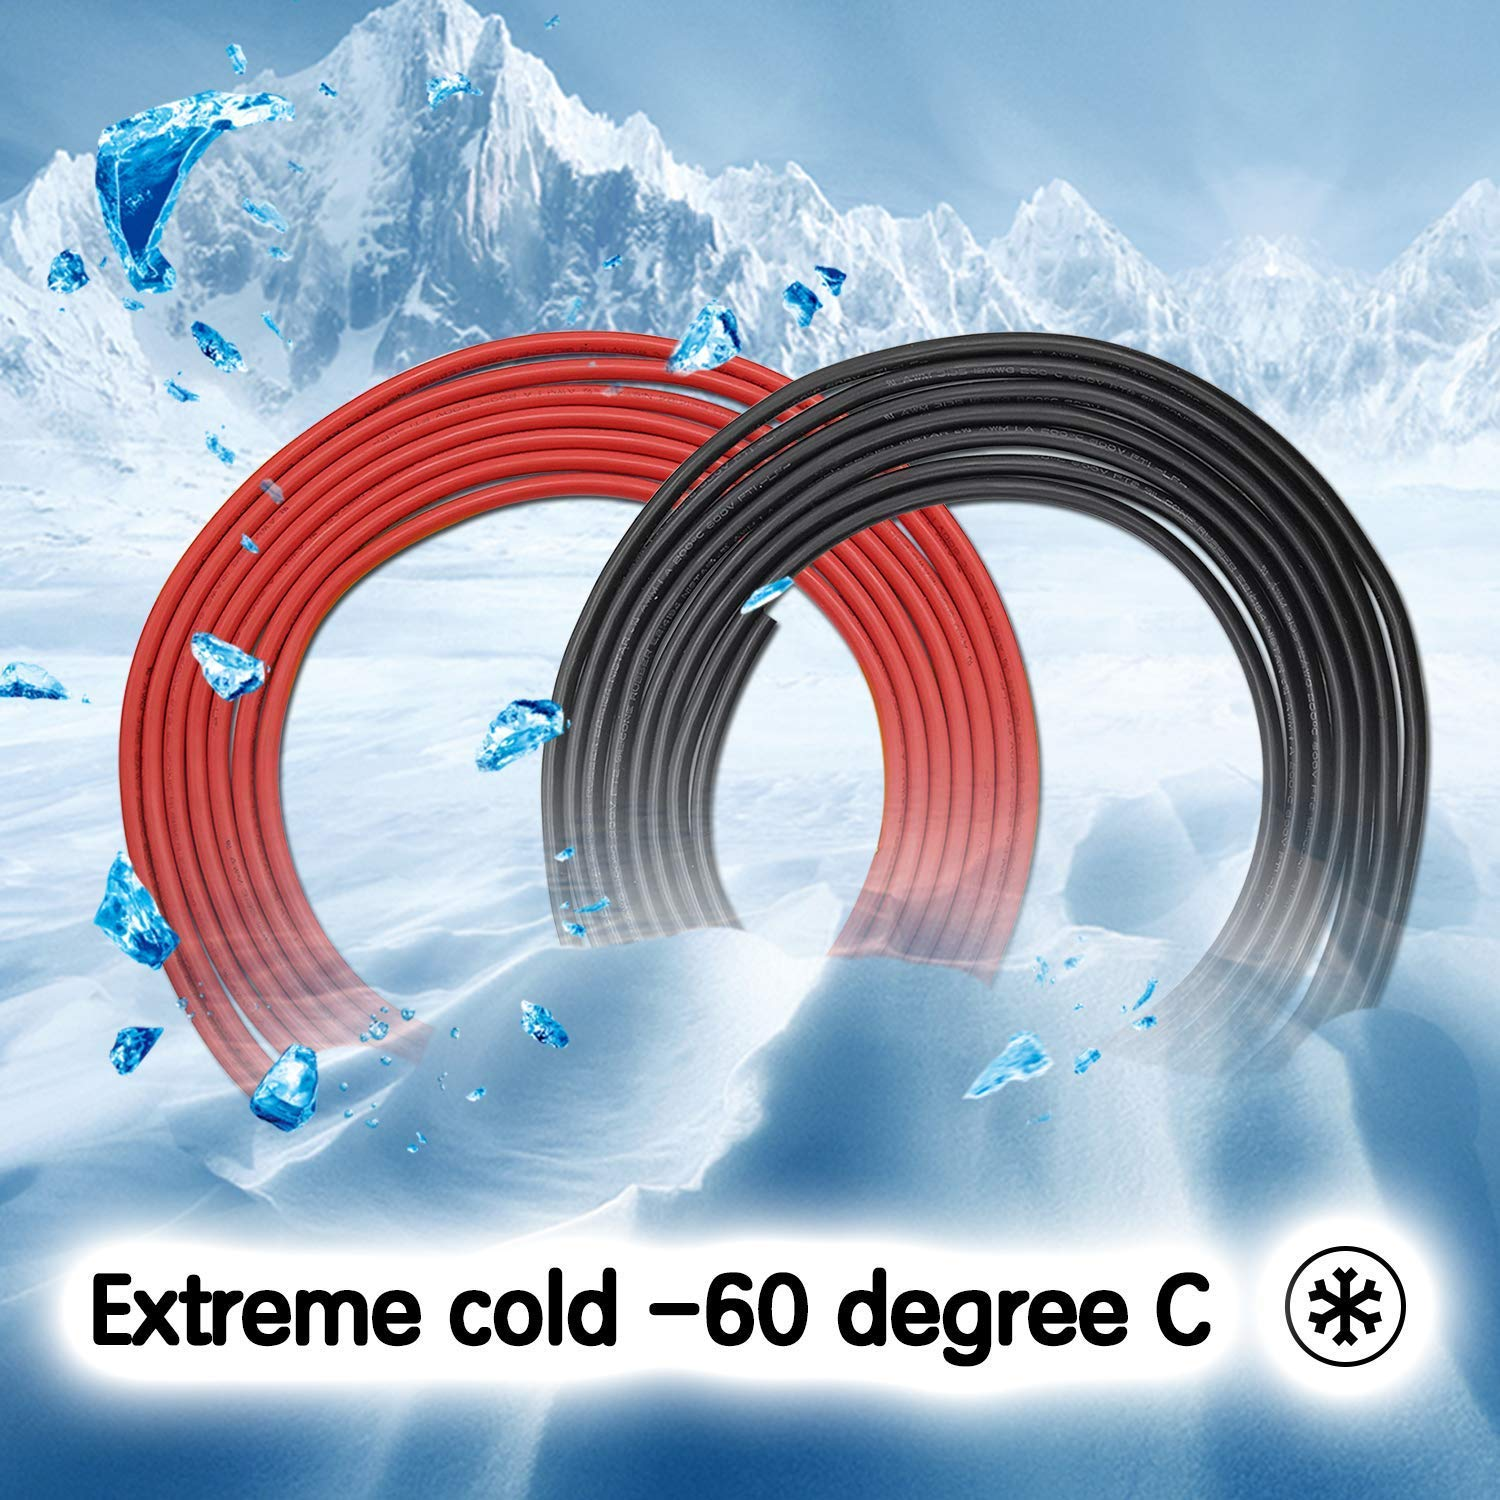 FIRMERST 12 Gauge High Temp Silicone Wire Stranded Tinned Copper UL-Listed 10 ft Black /& 10 ft Red